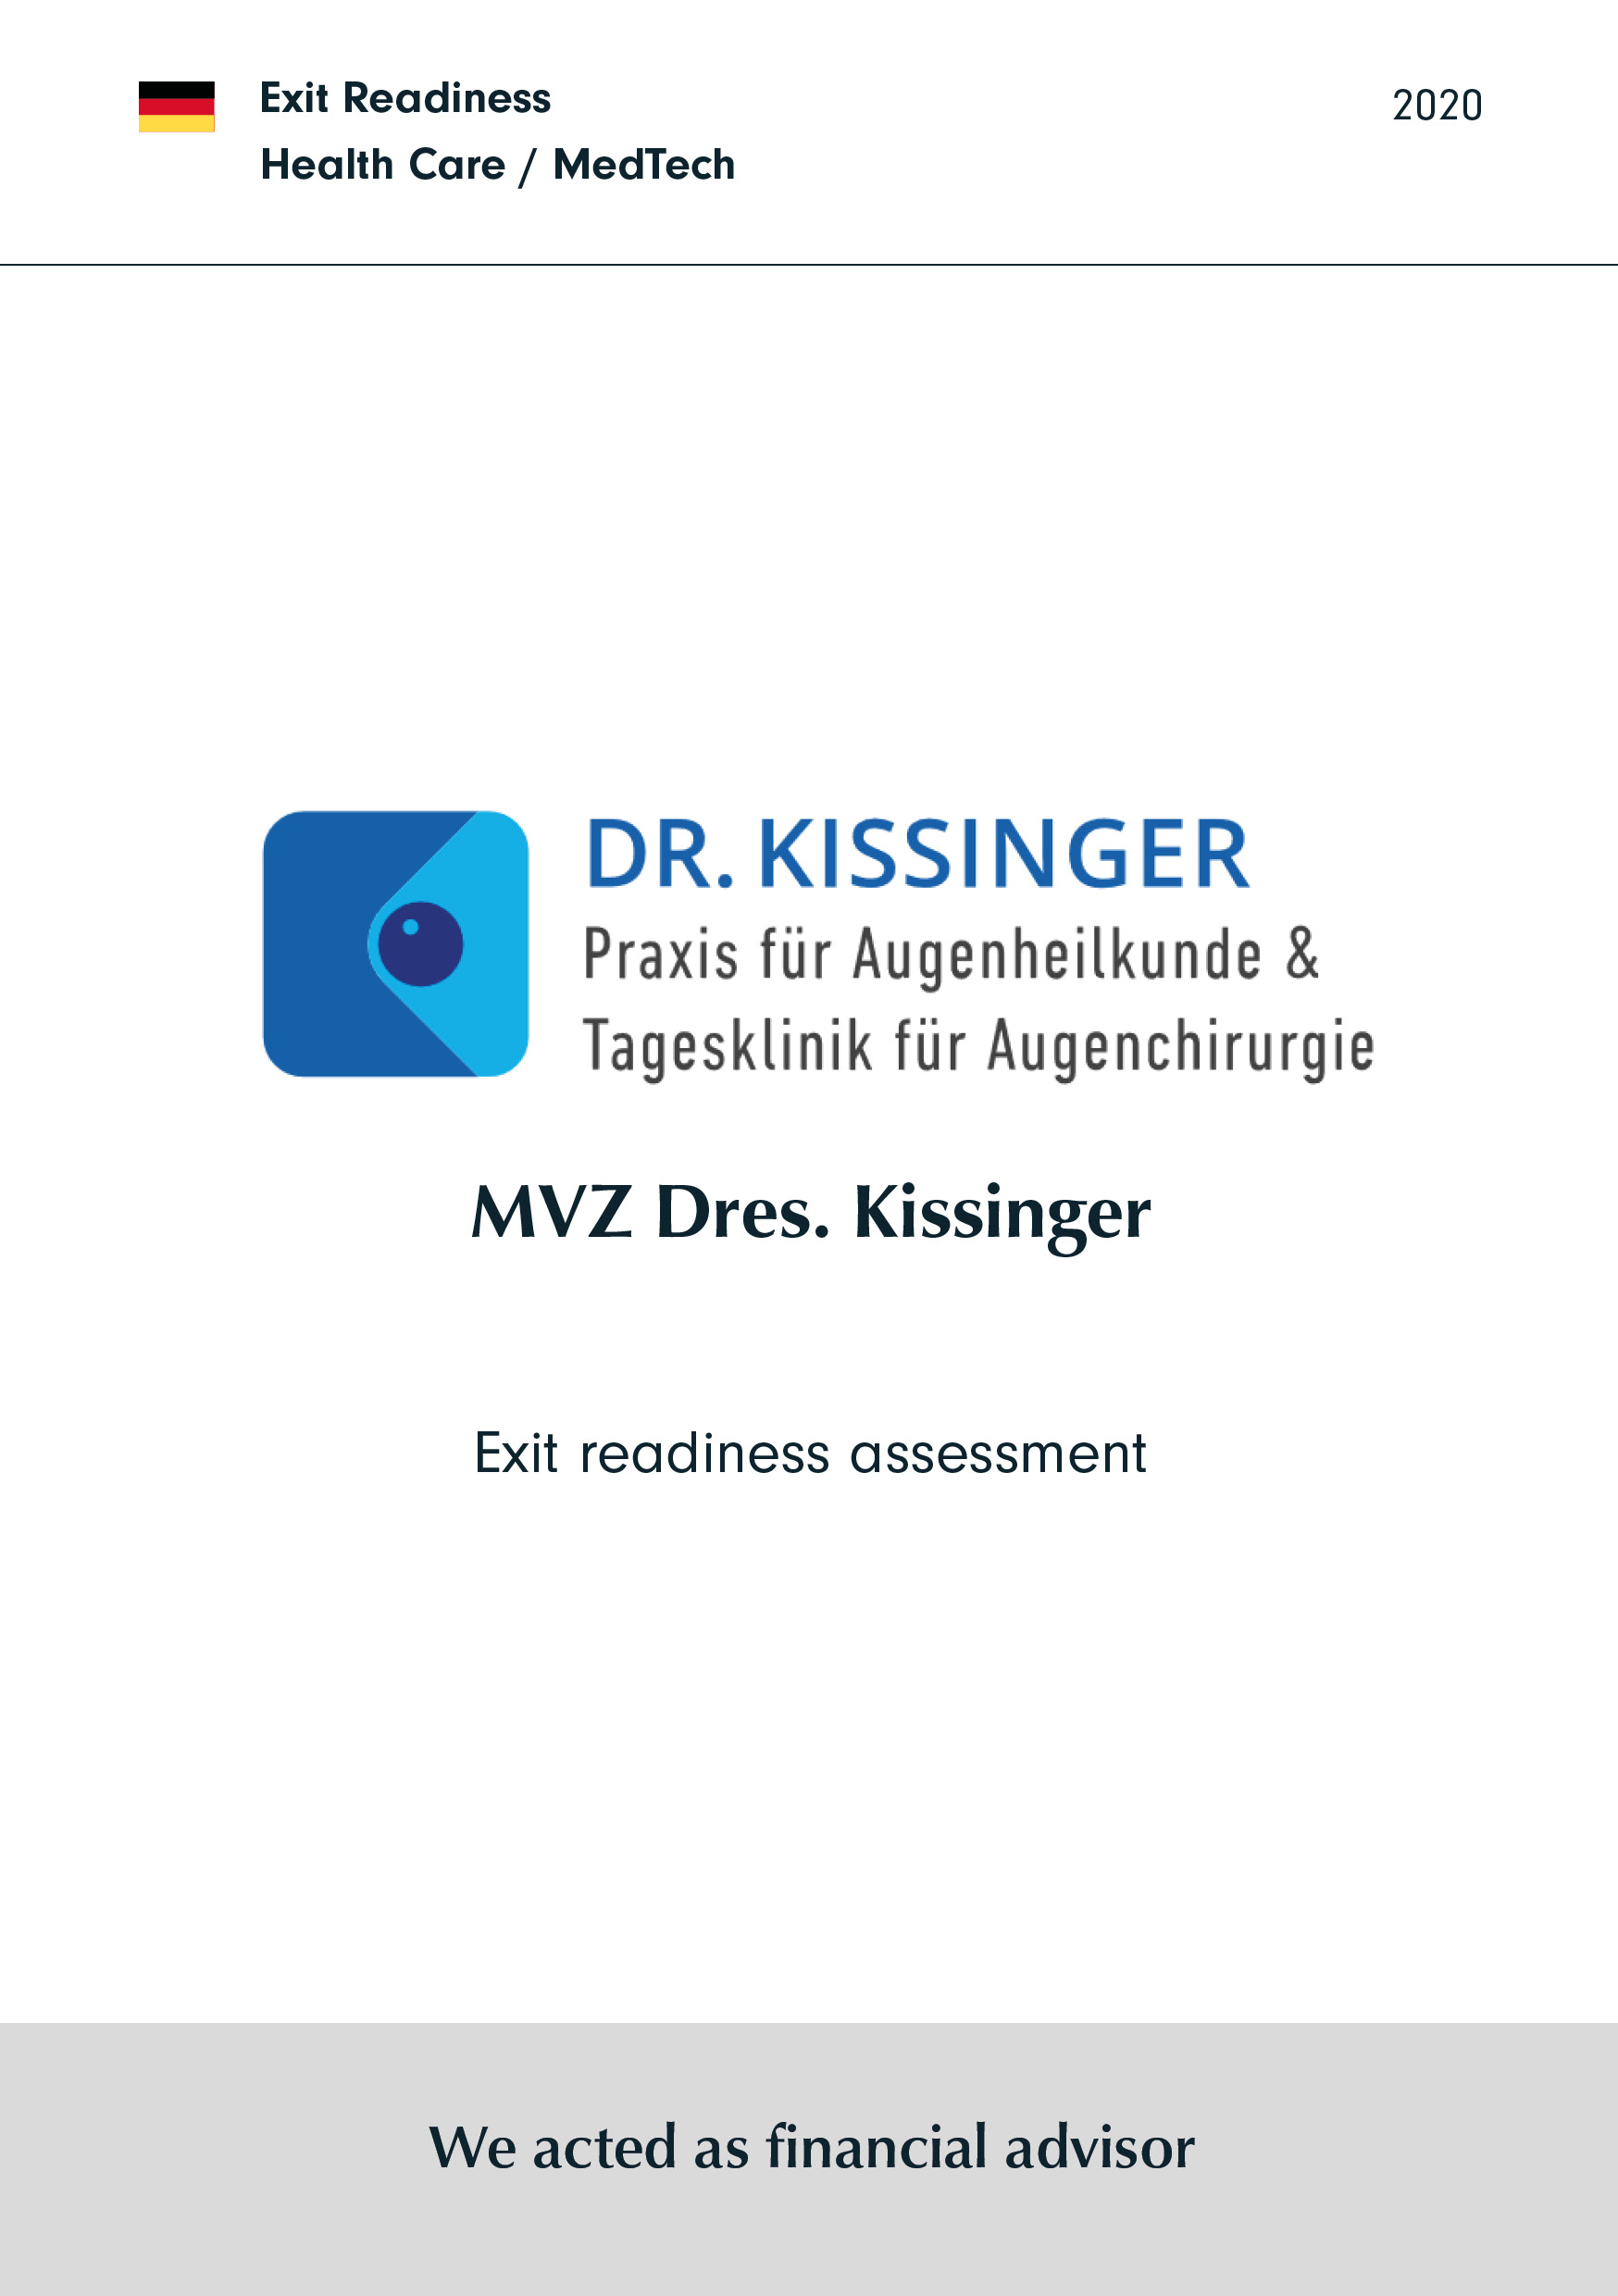 MVZ Dres. Kissinger | Exit readiness assessment